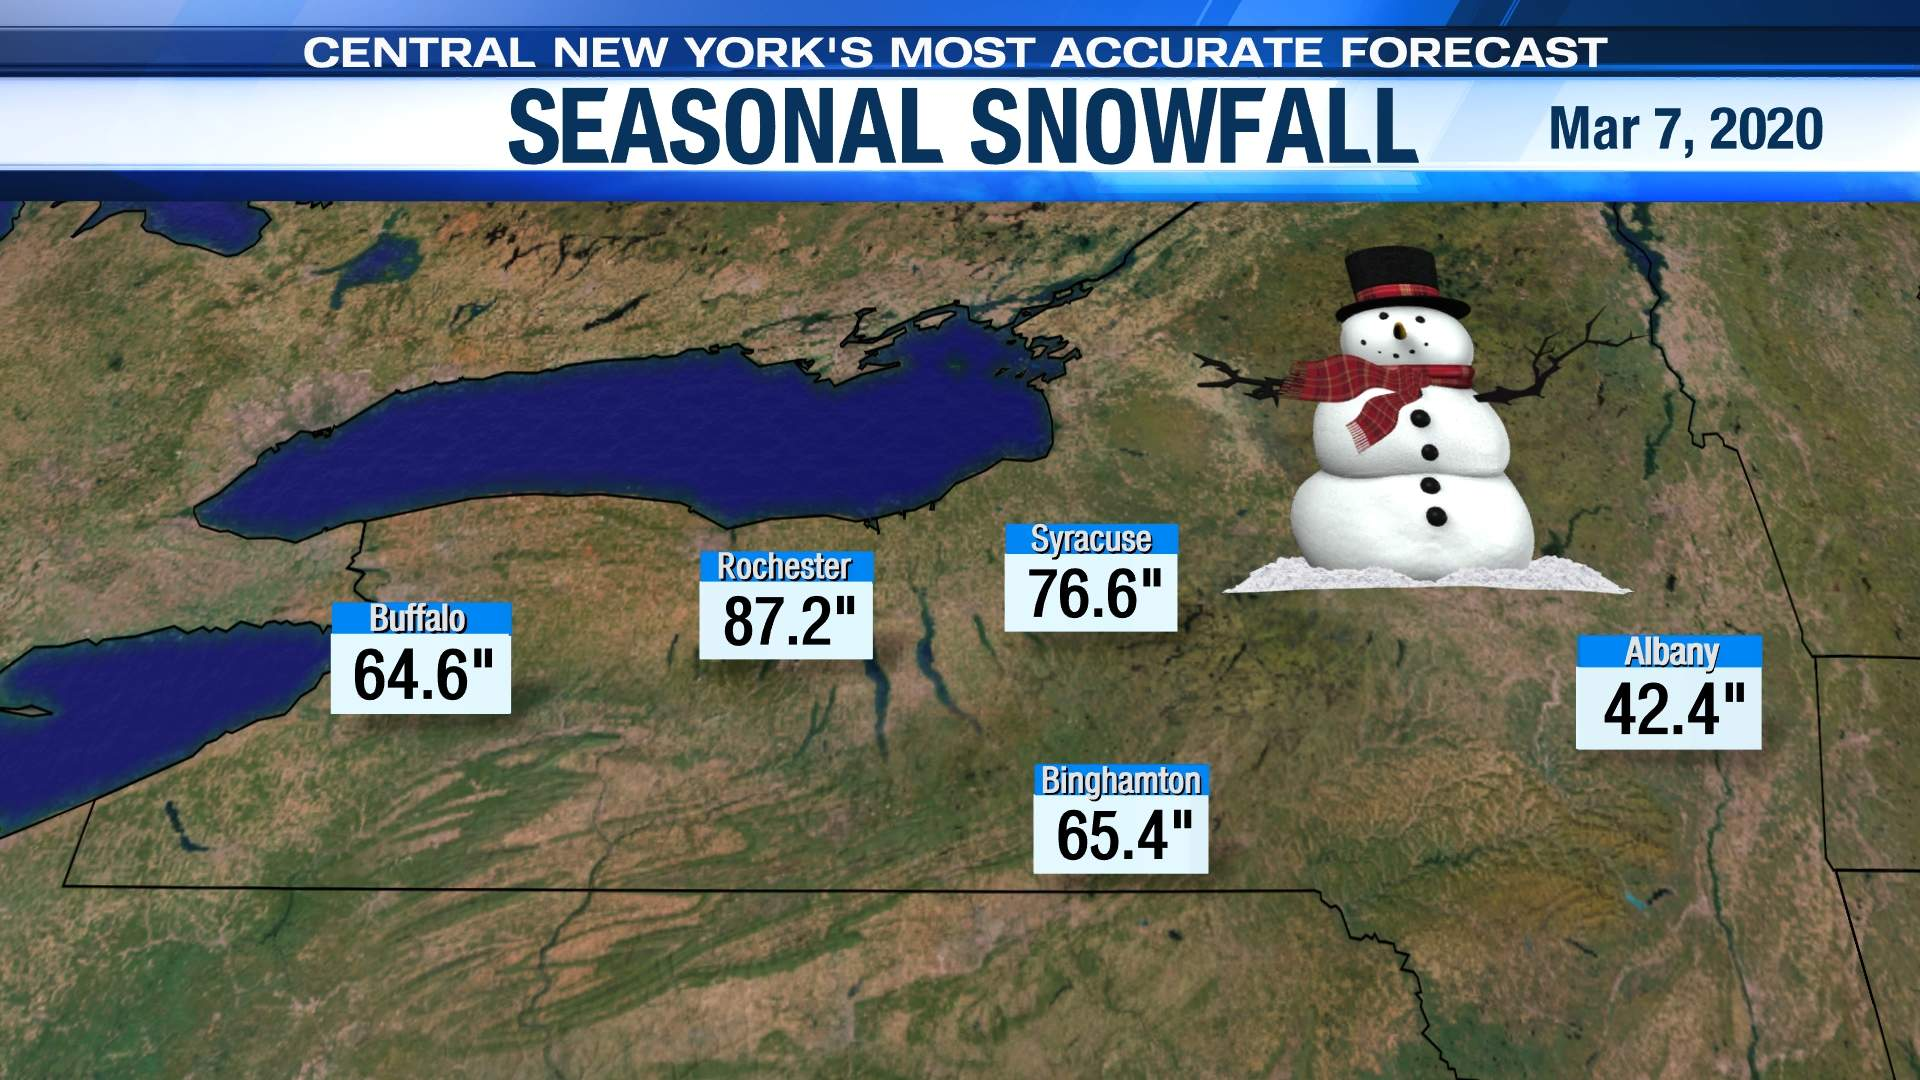 New York State Seasonal Snowfall Map